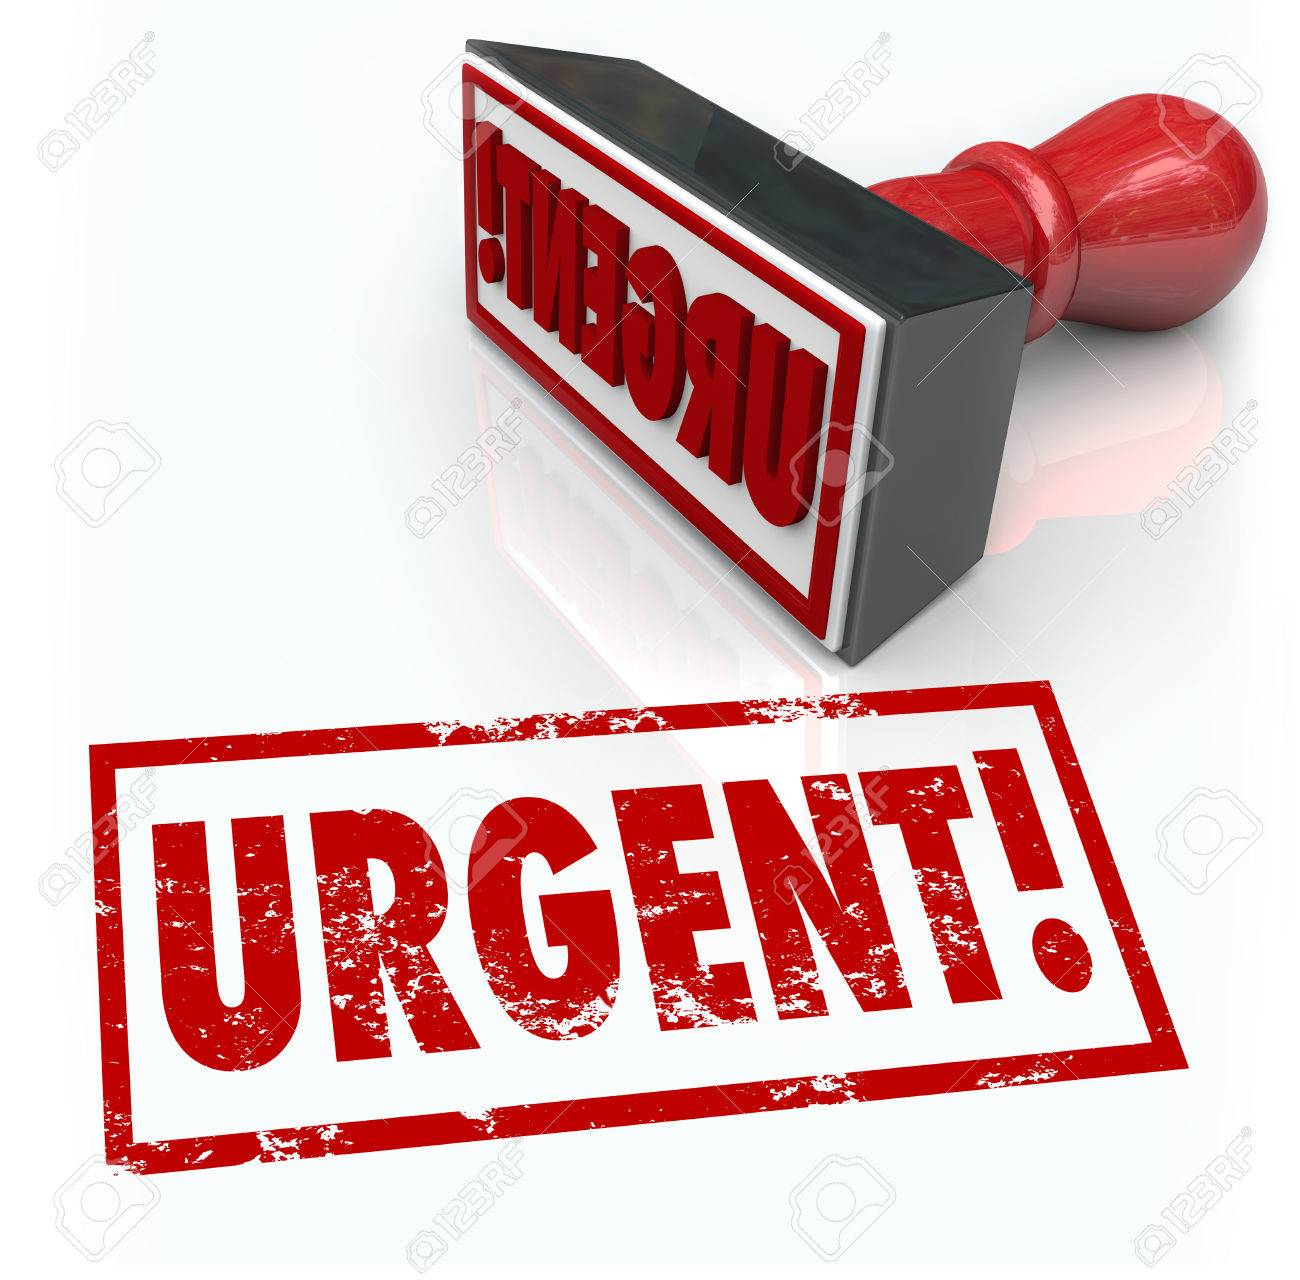 The word Urgent on a red rubber stamp to illustrate an emergency or action required as a top crucial priority or vital document to sign and return Stock Photo - 22869475